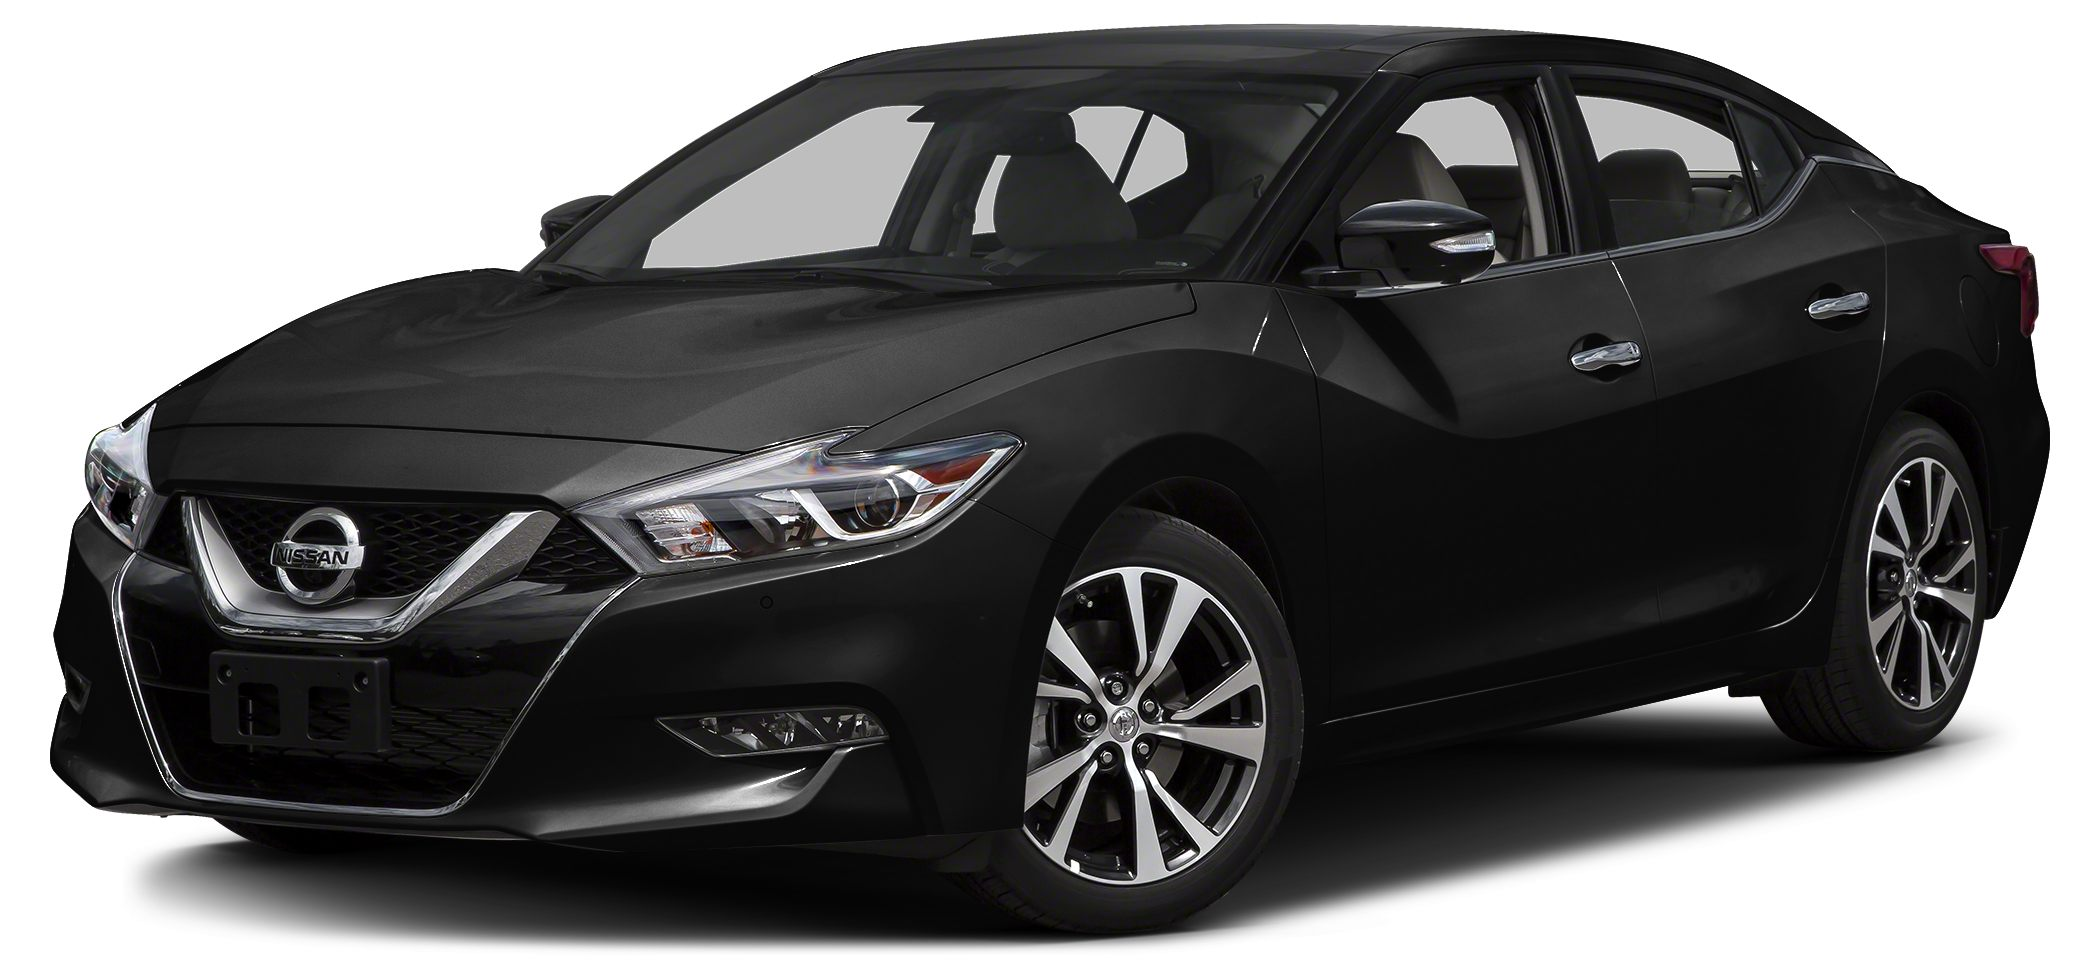 2017 Nissan Maxima 35 SL New Arrival This 2017 Nissan Maxima SL will sell fast Priced to sell a